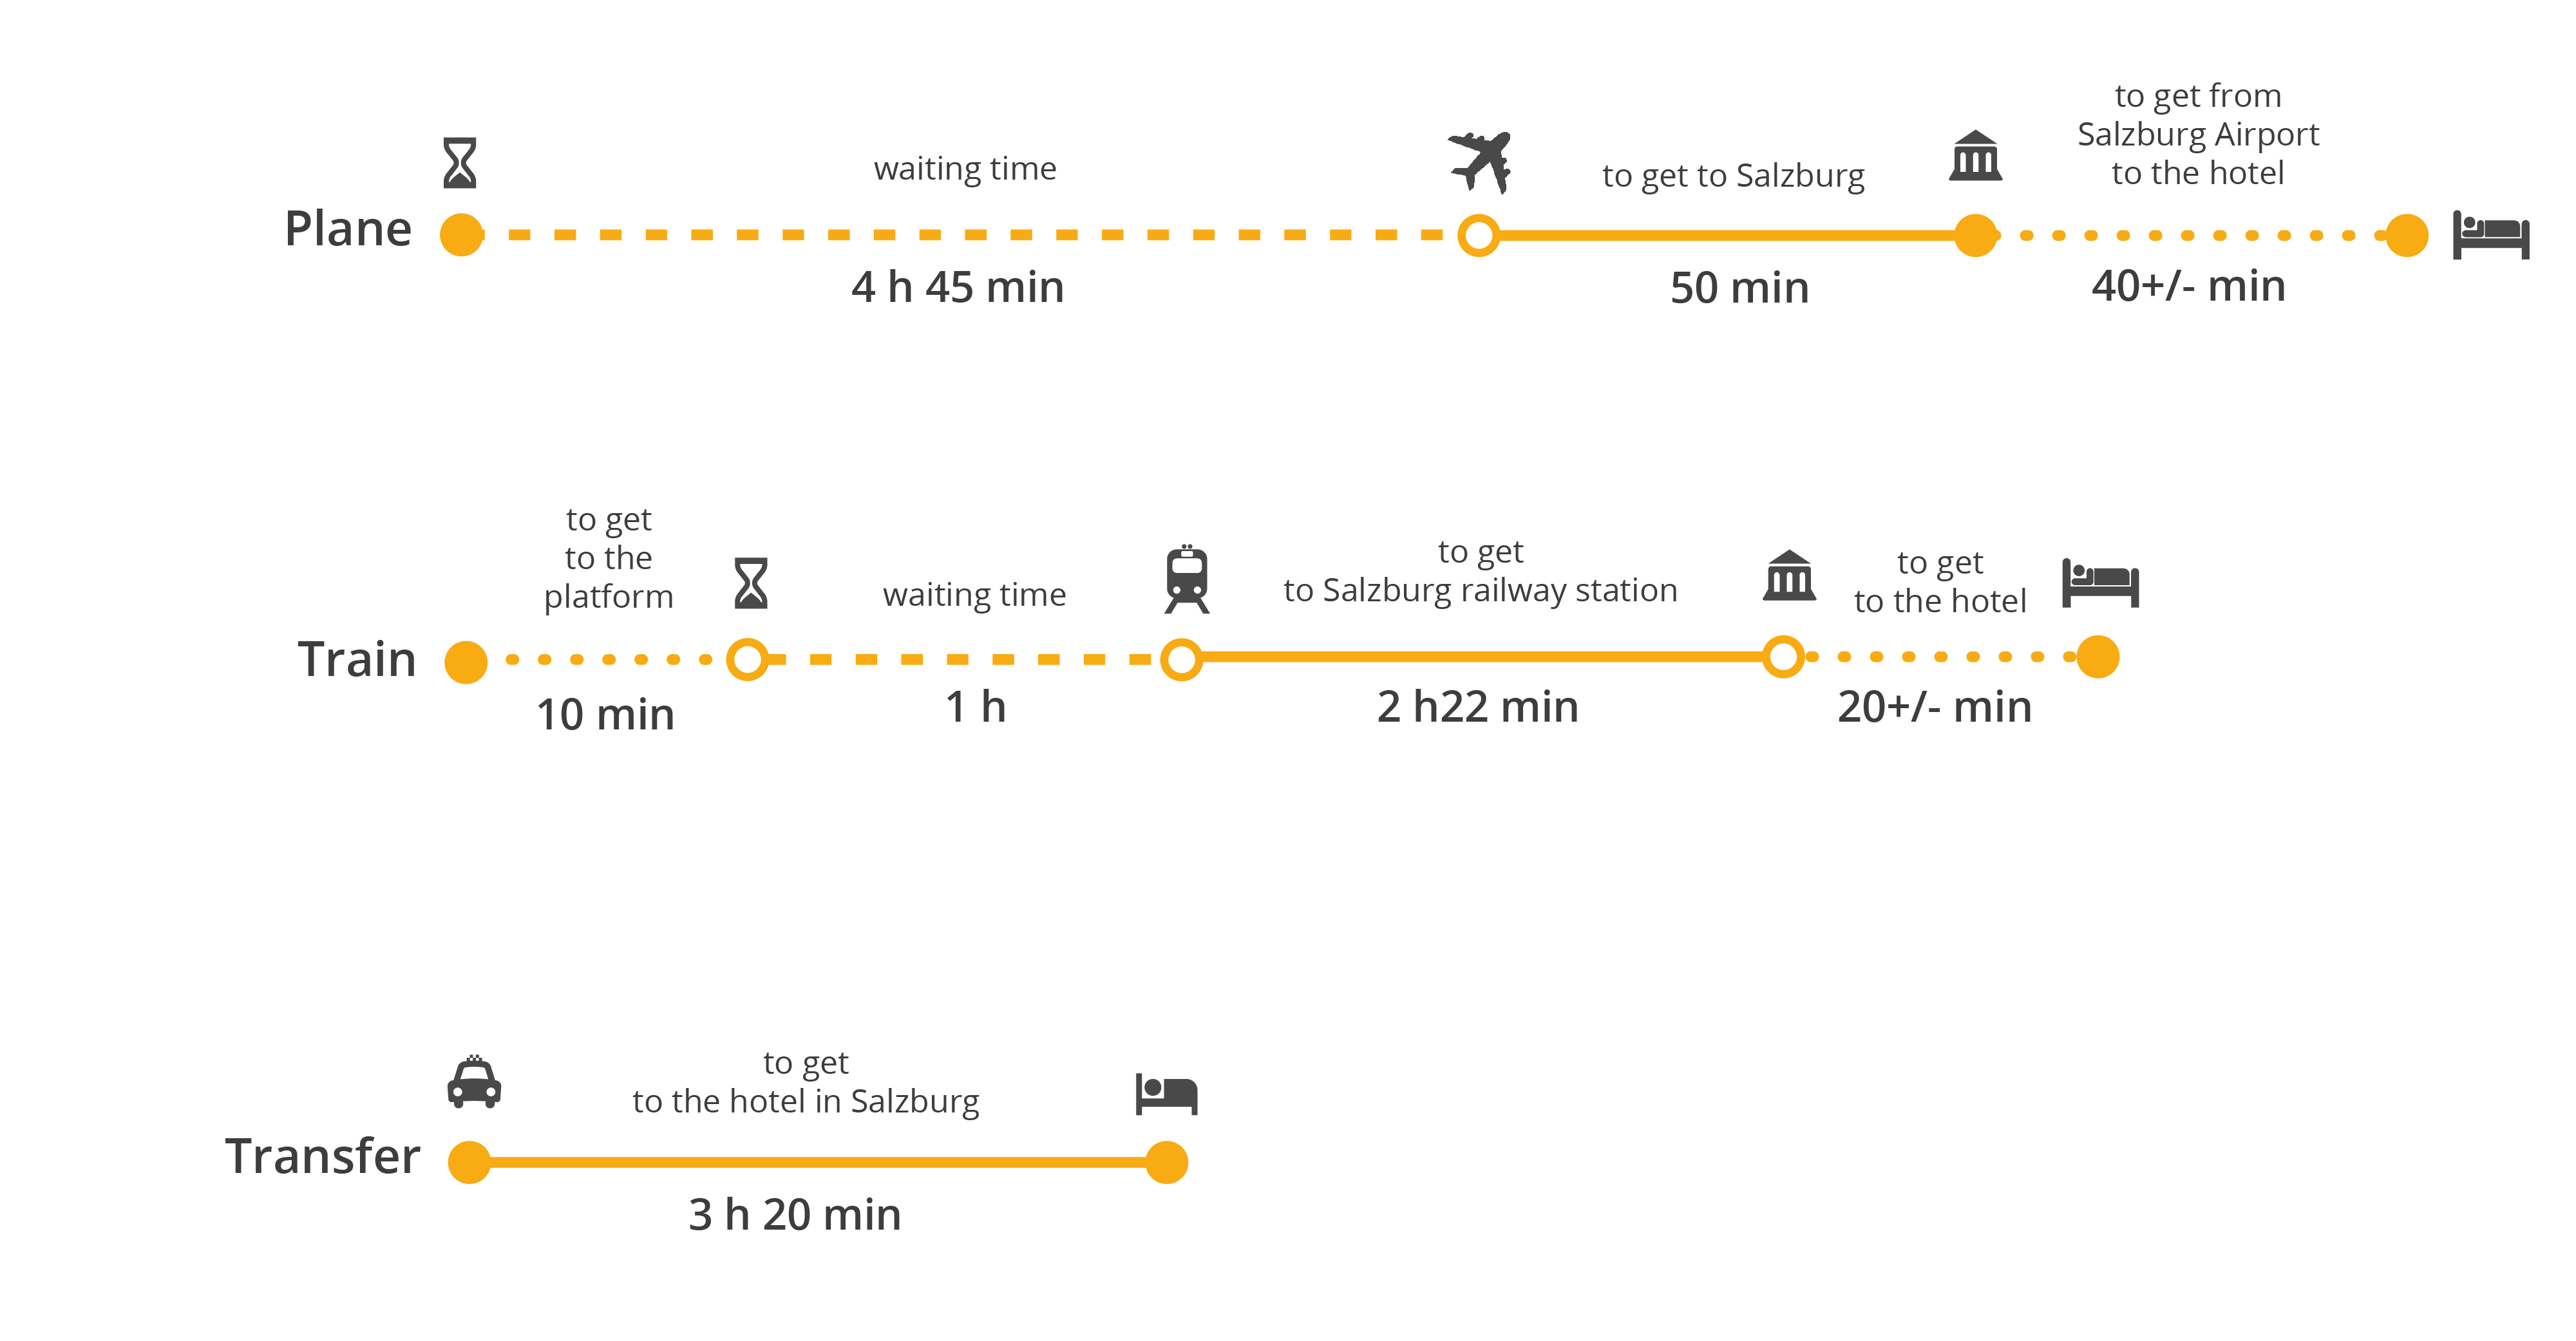 How to get from Vienna to Salzburg